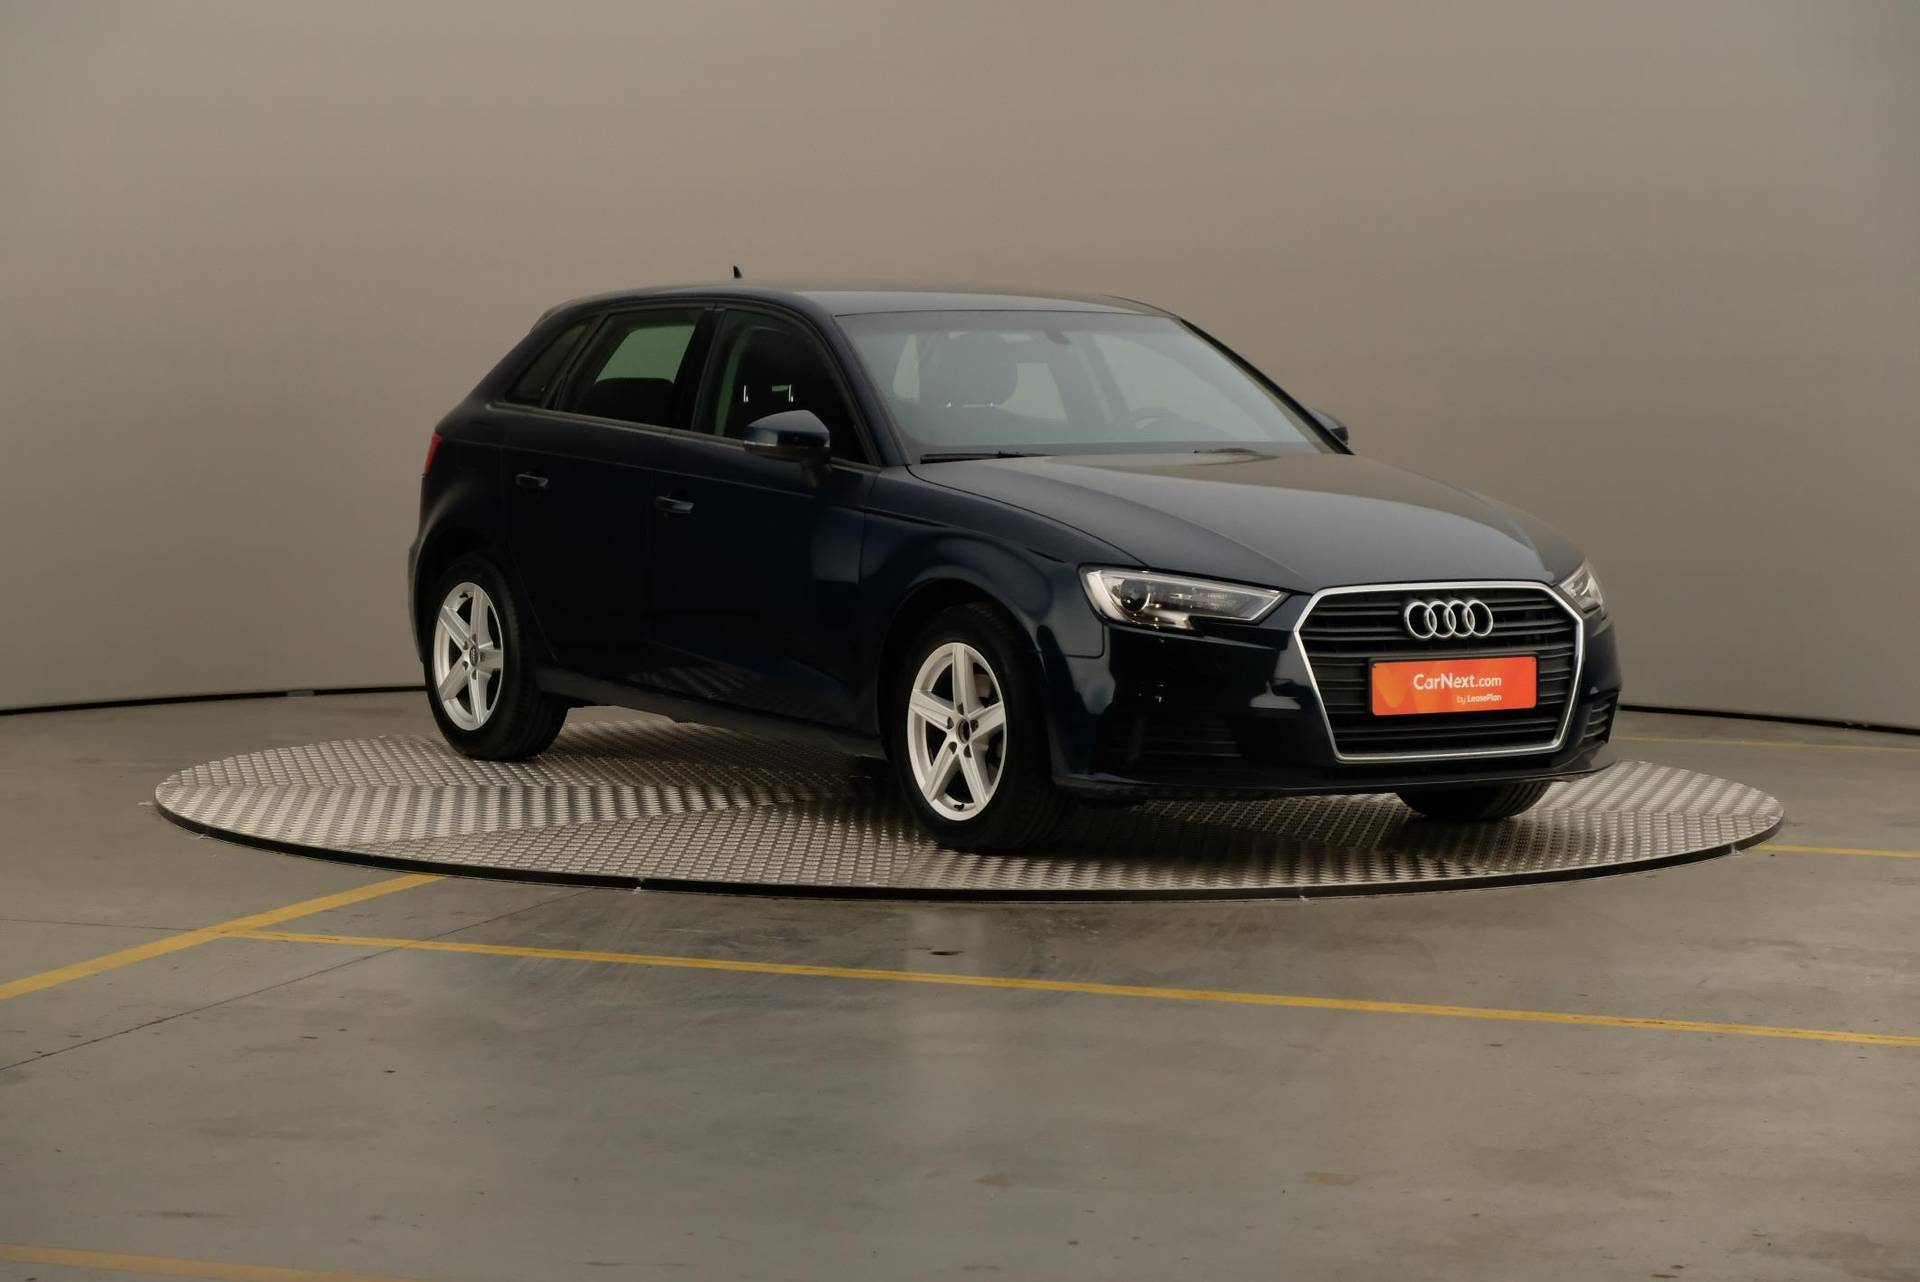 Audi A3 1.6 TDi Pack Intuition Plus Euro6, 360-image28